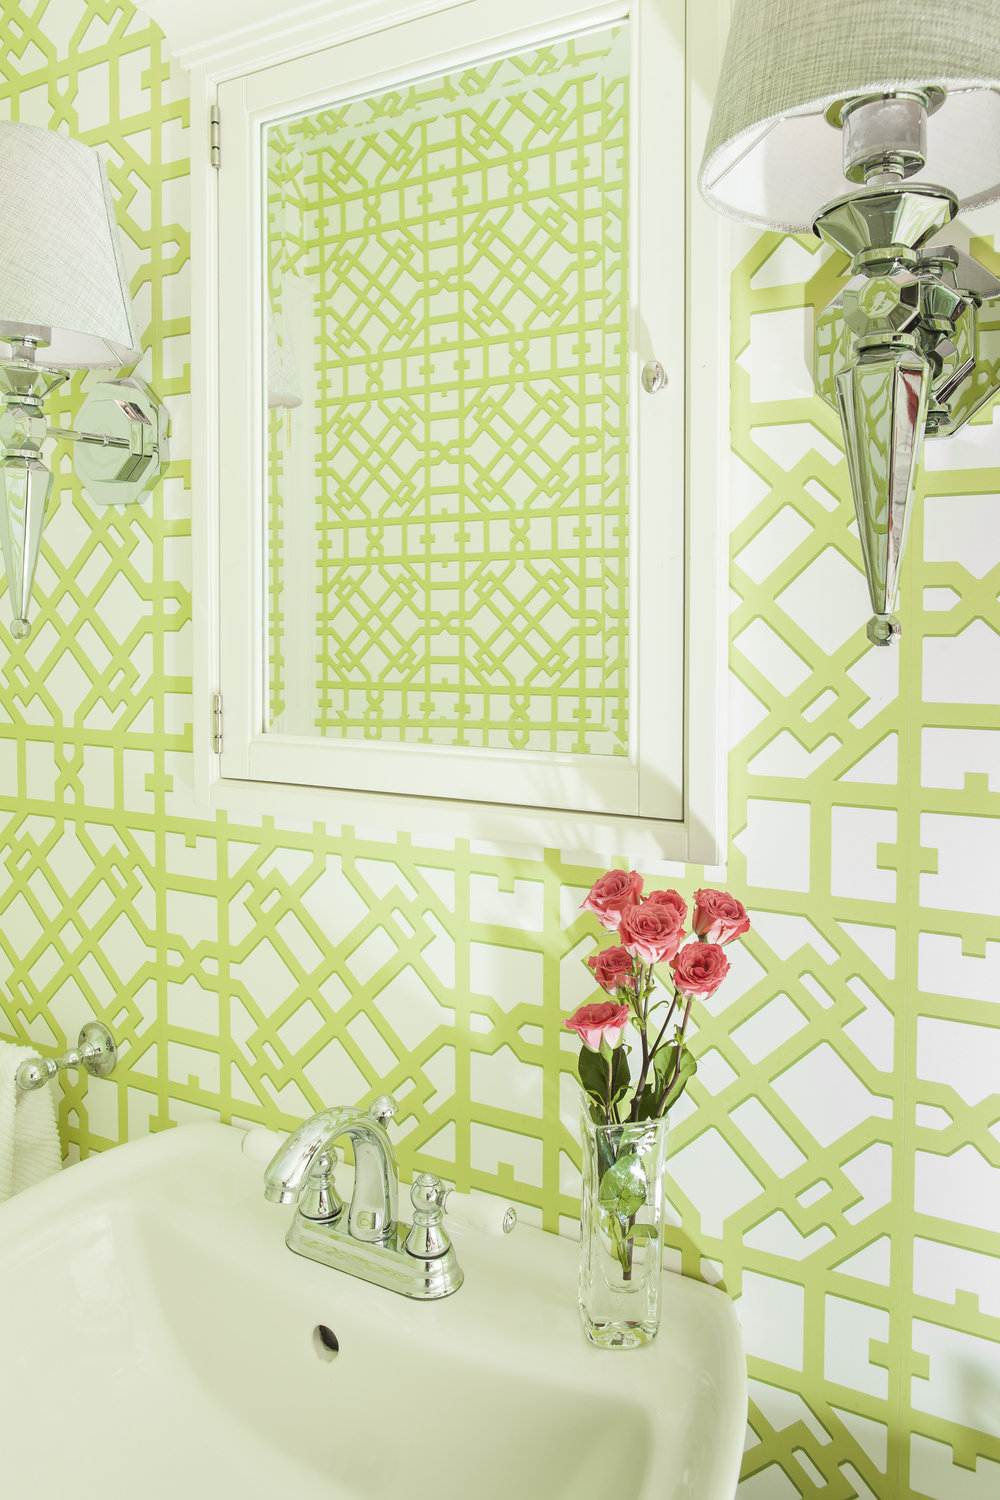 SMI_Sunnyside_Powder Room no art _web (1).JPG